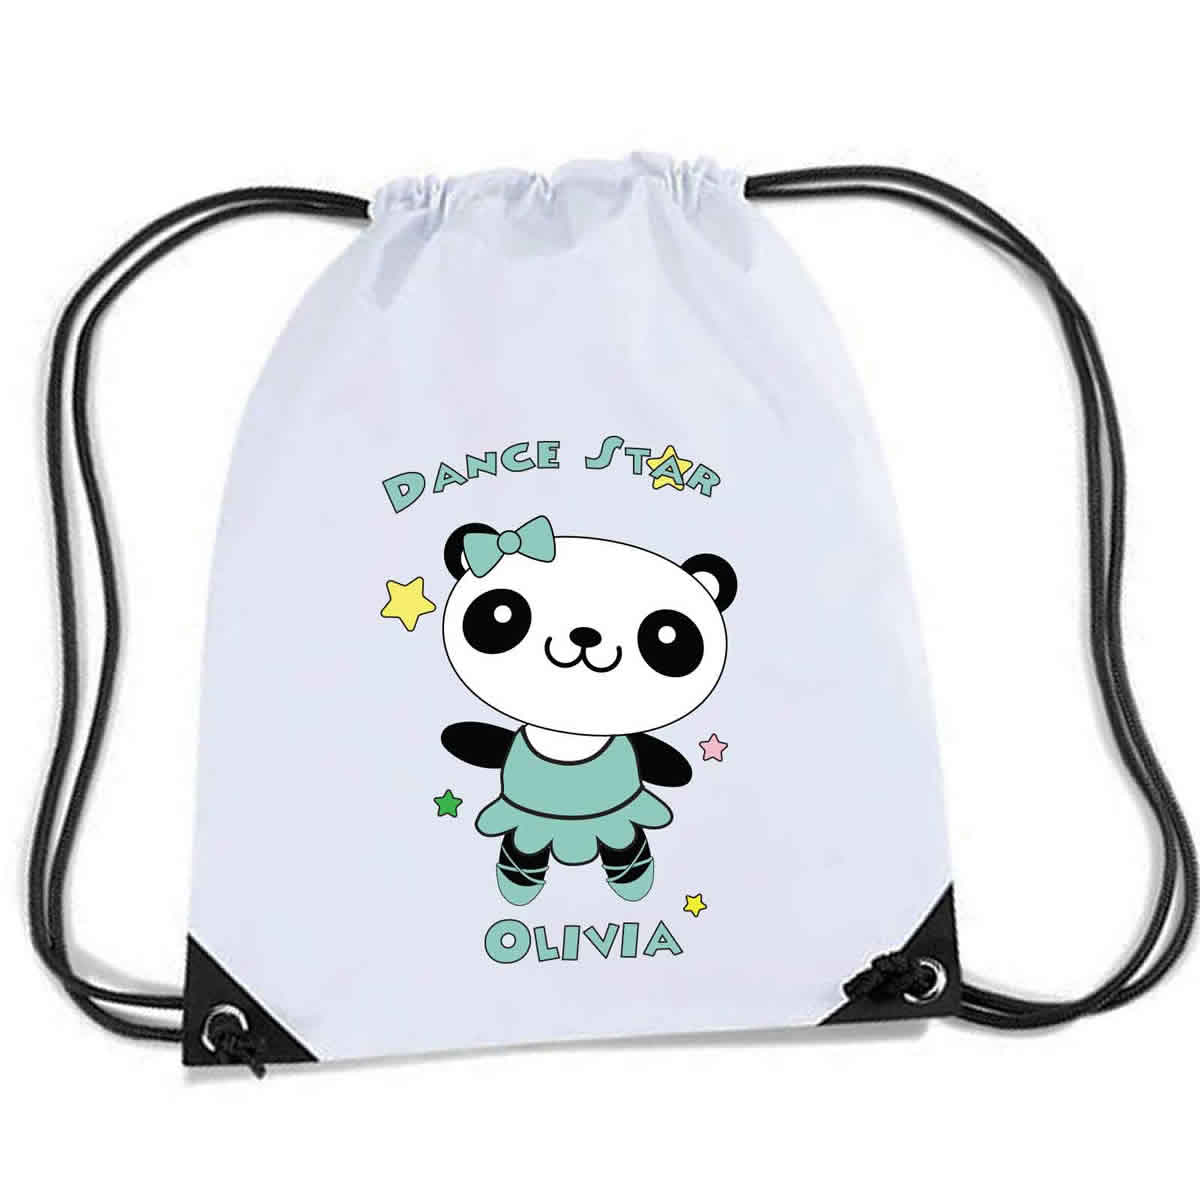 Cute Little Dancing Star Panda Design Personalised Sports Nylon Draw String Gym Sack Pack Rope Bag